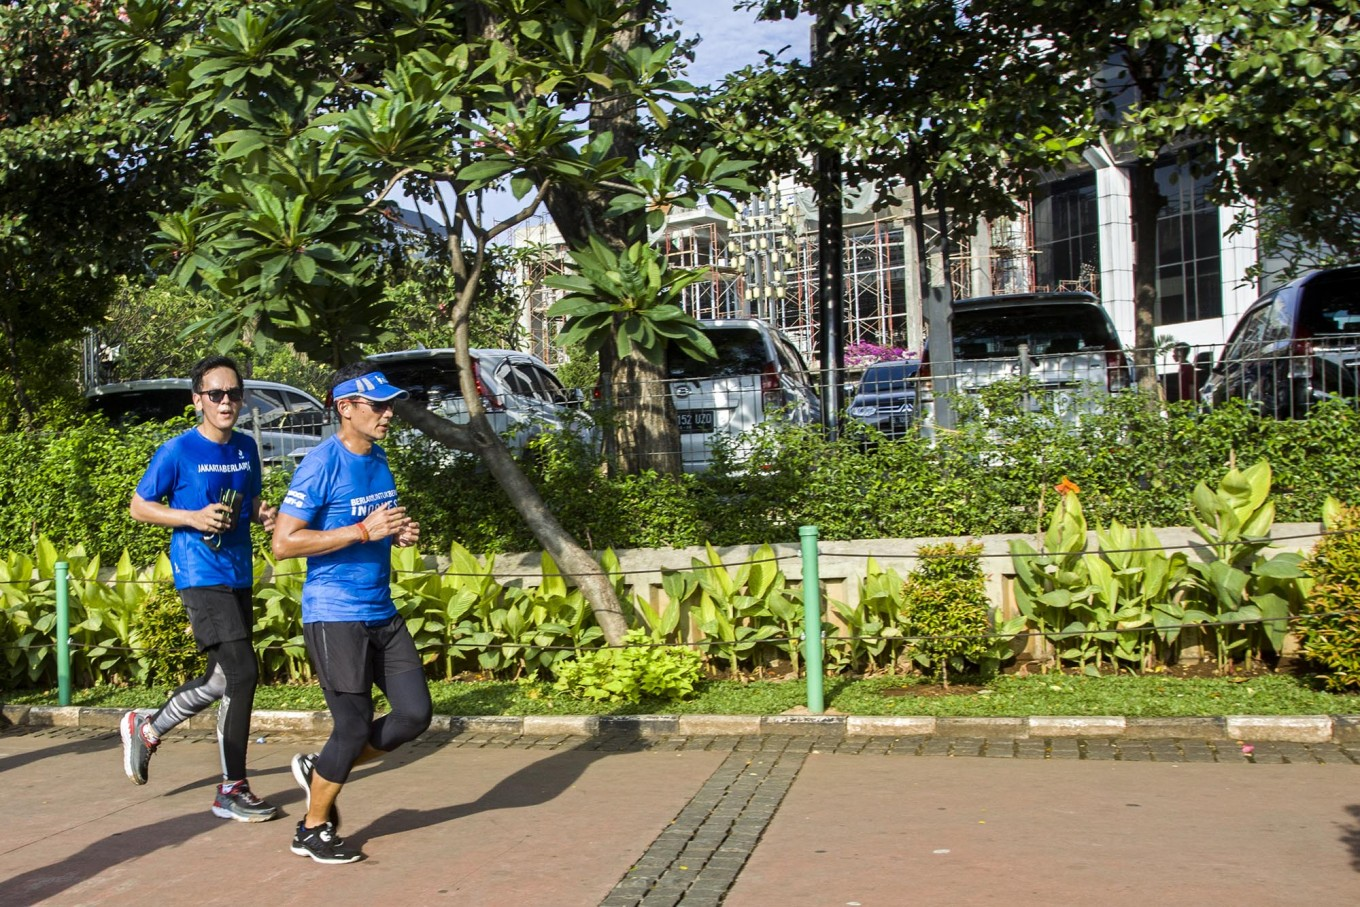 Sandiaga to switch from groundwater to pipe water at private residence